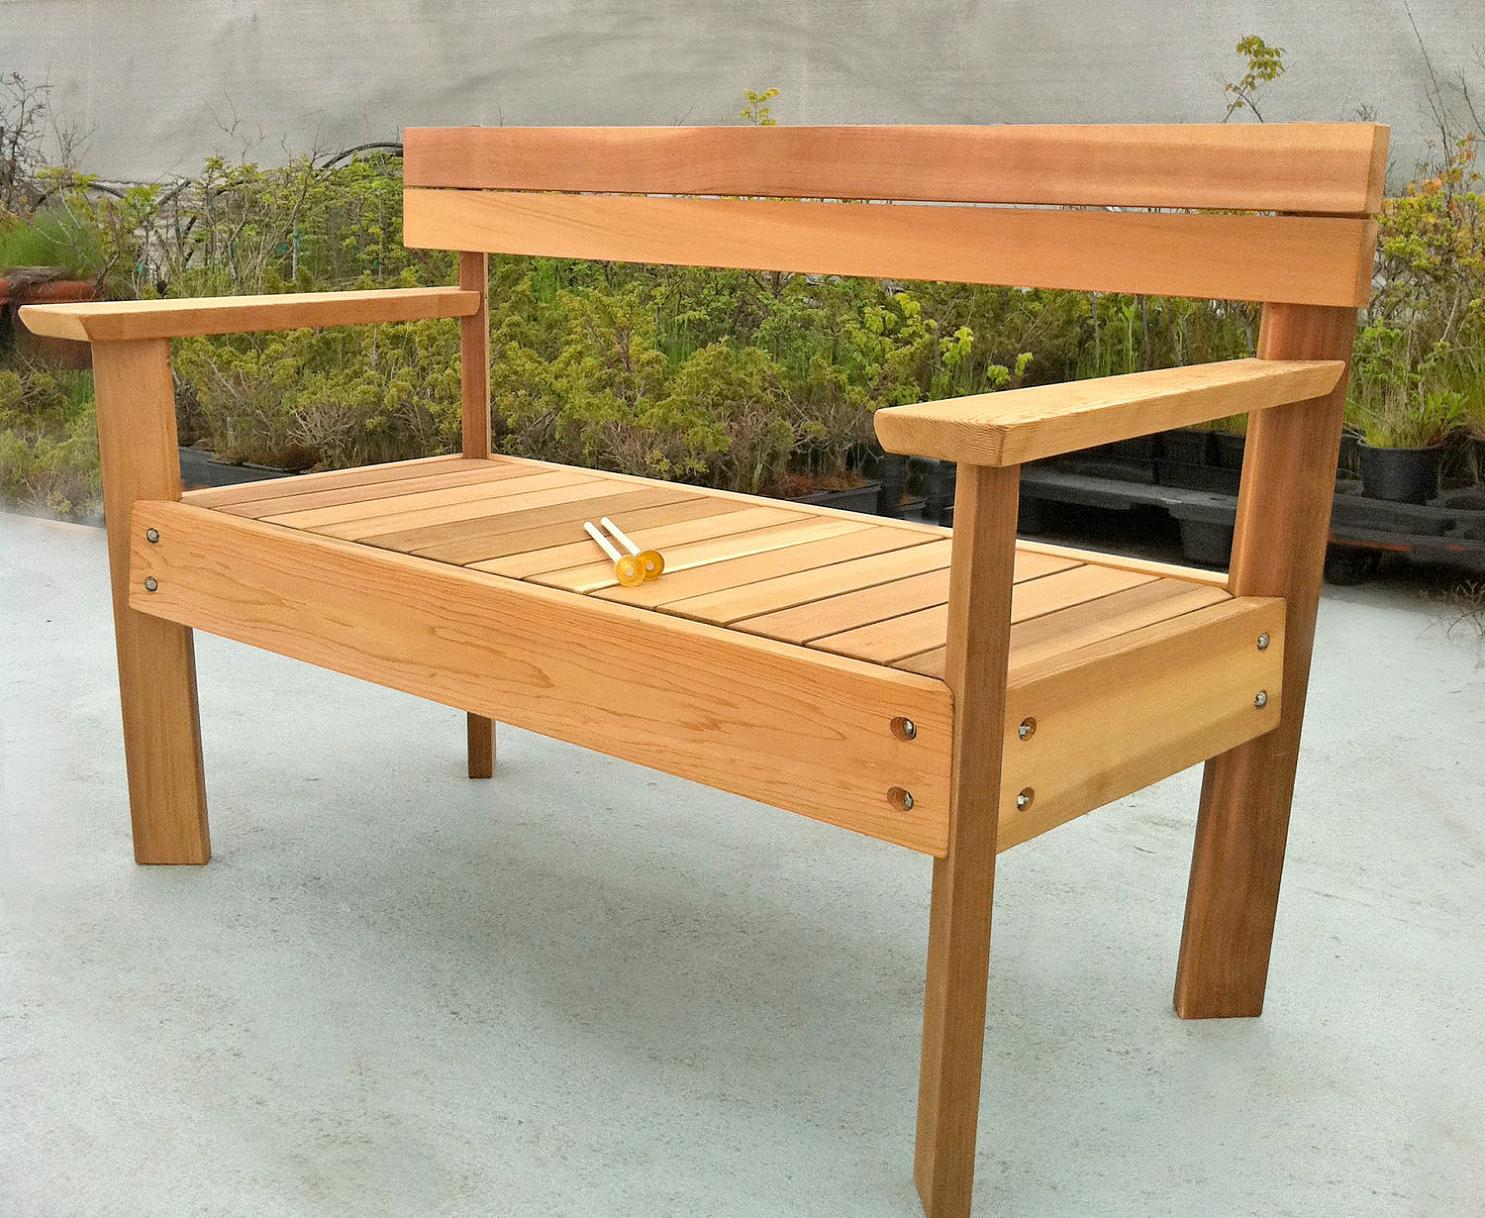 15 Creative Benches And Cool Bench Designs